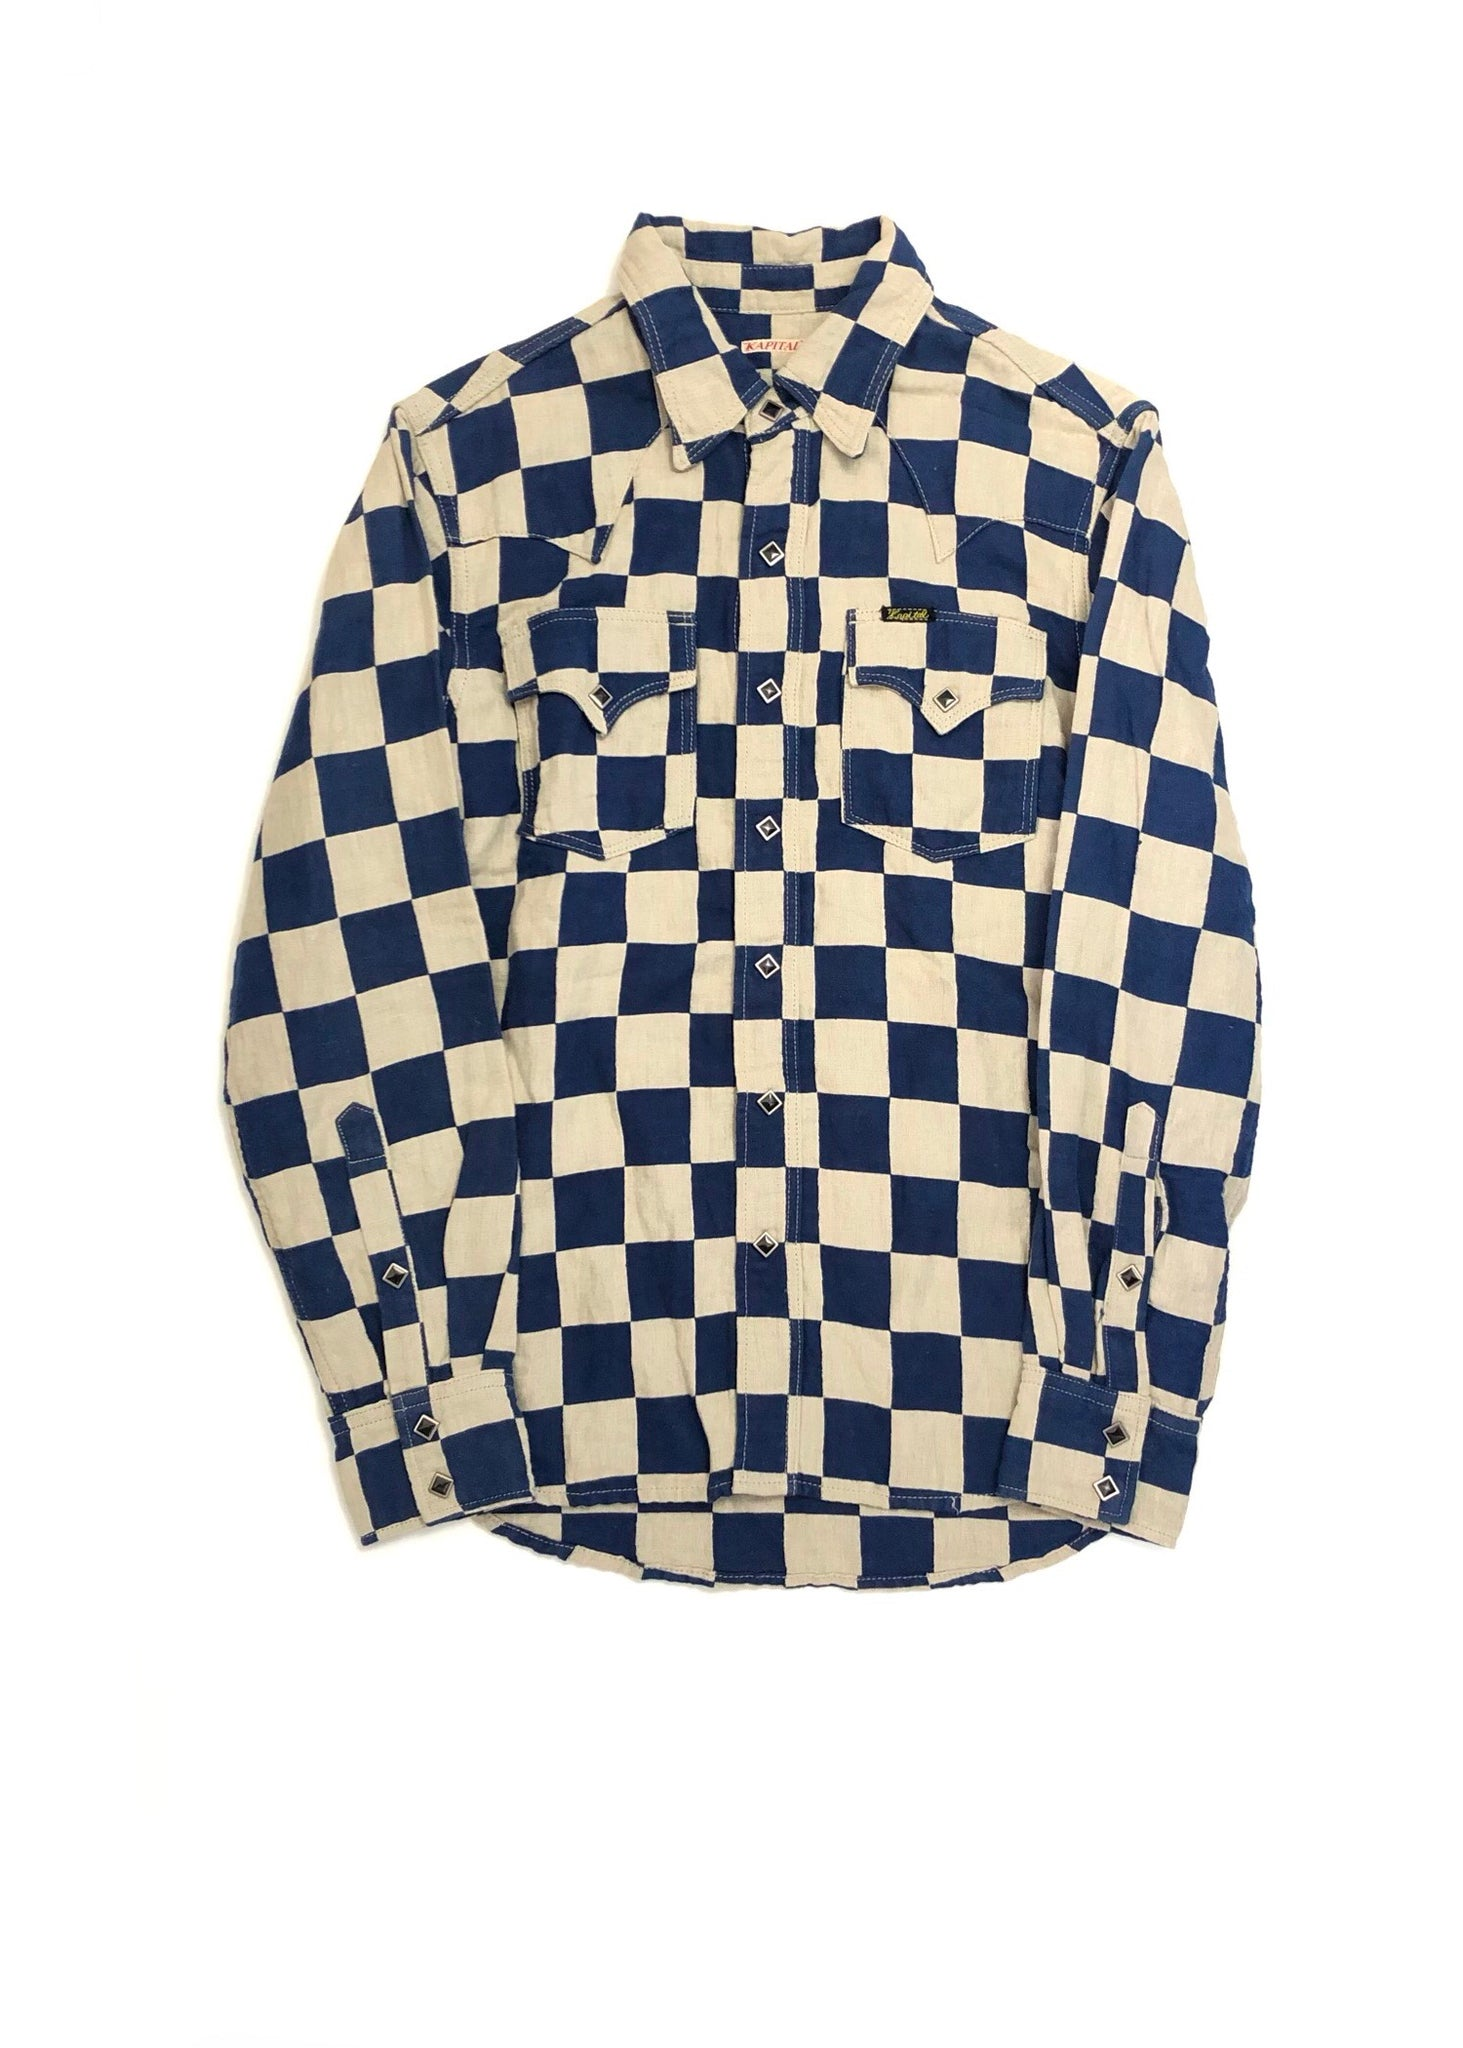 KAPITAL CHECKERED SHIRT- SIZE 2